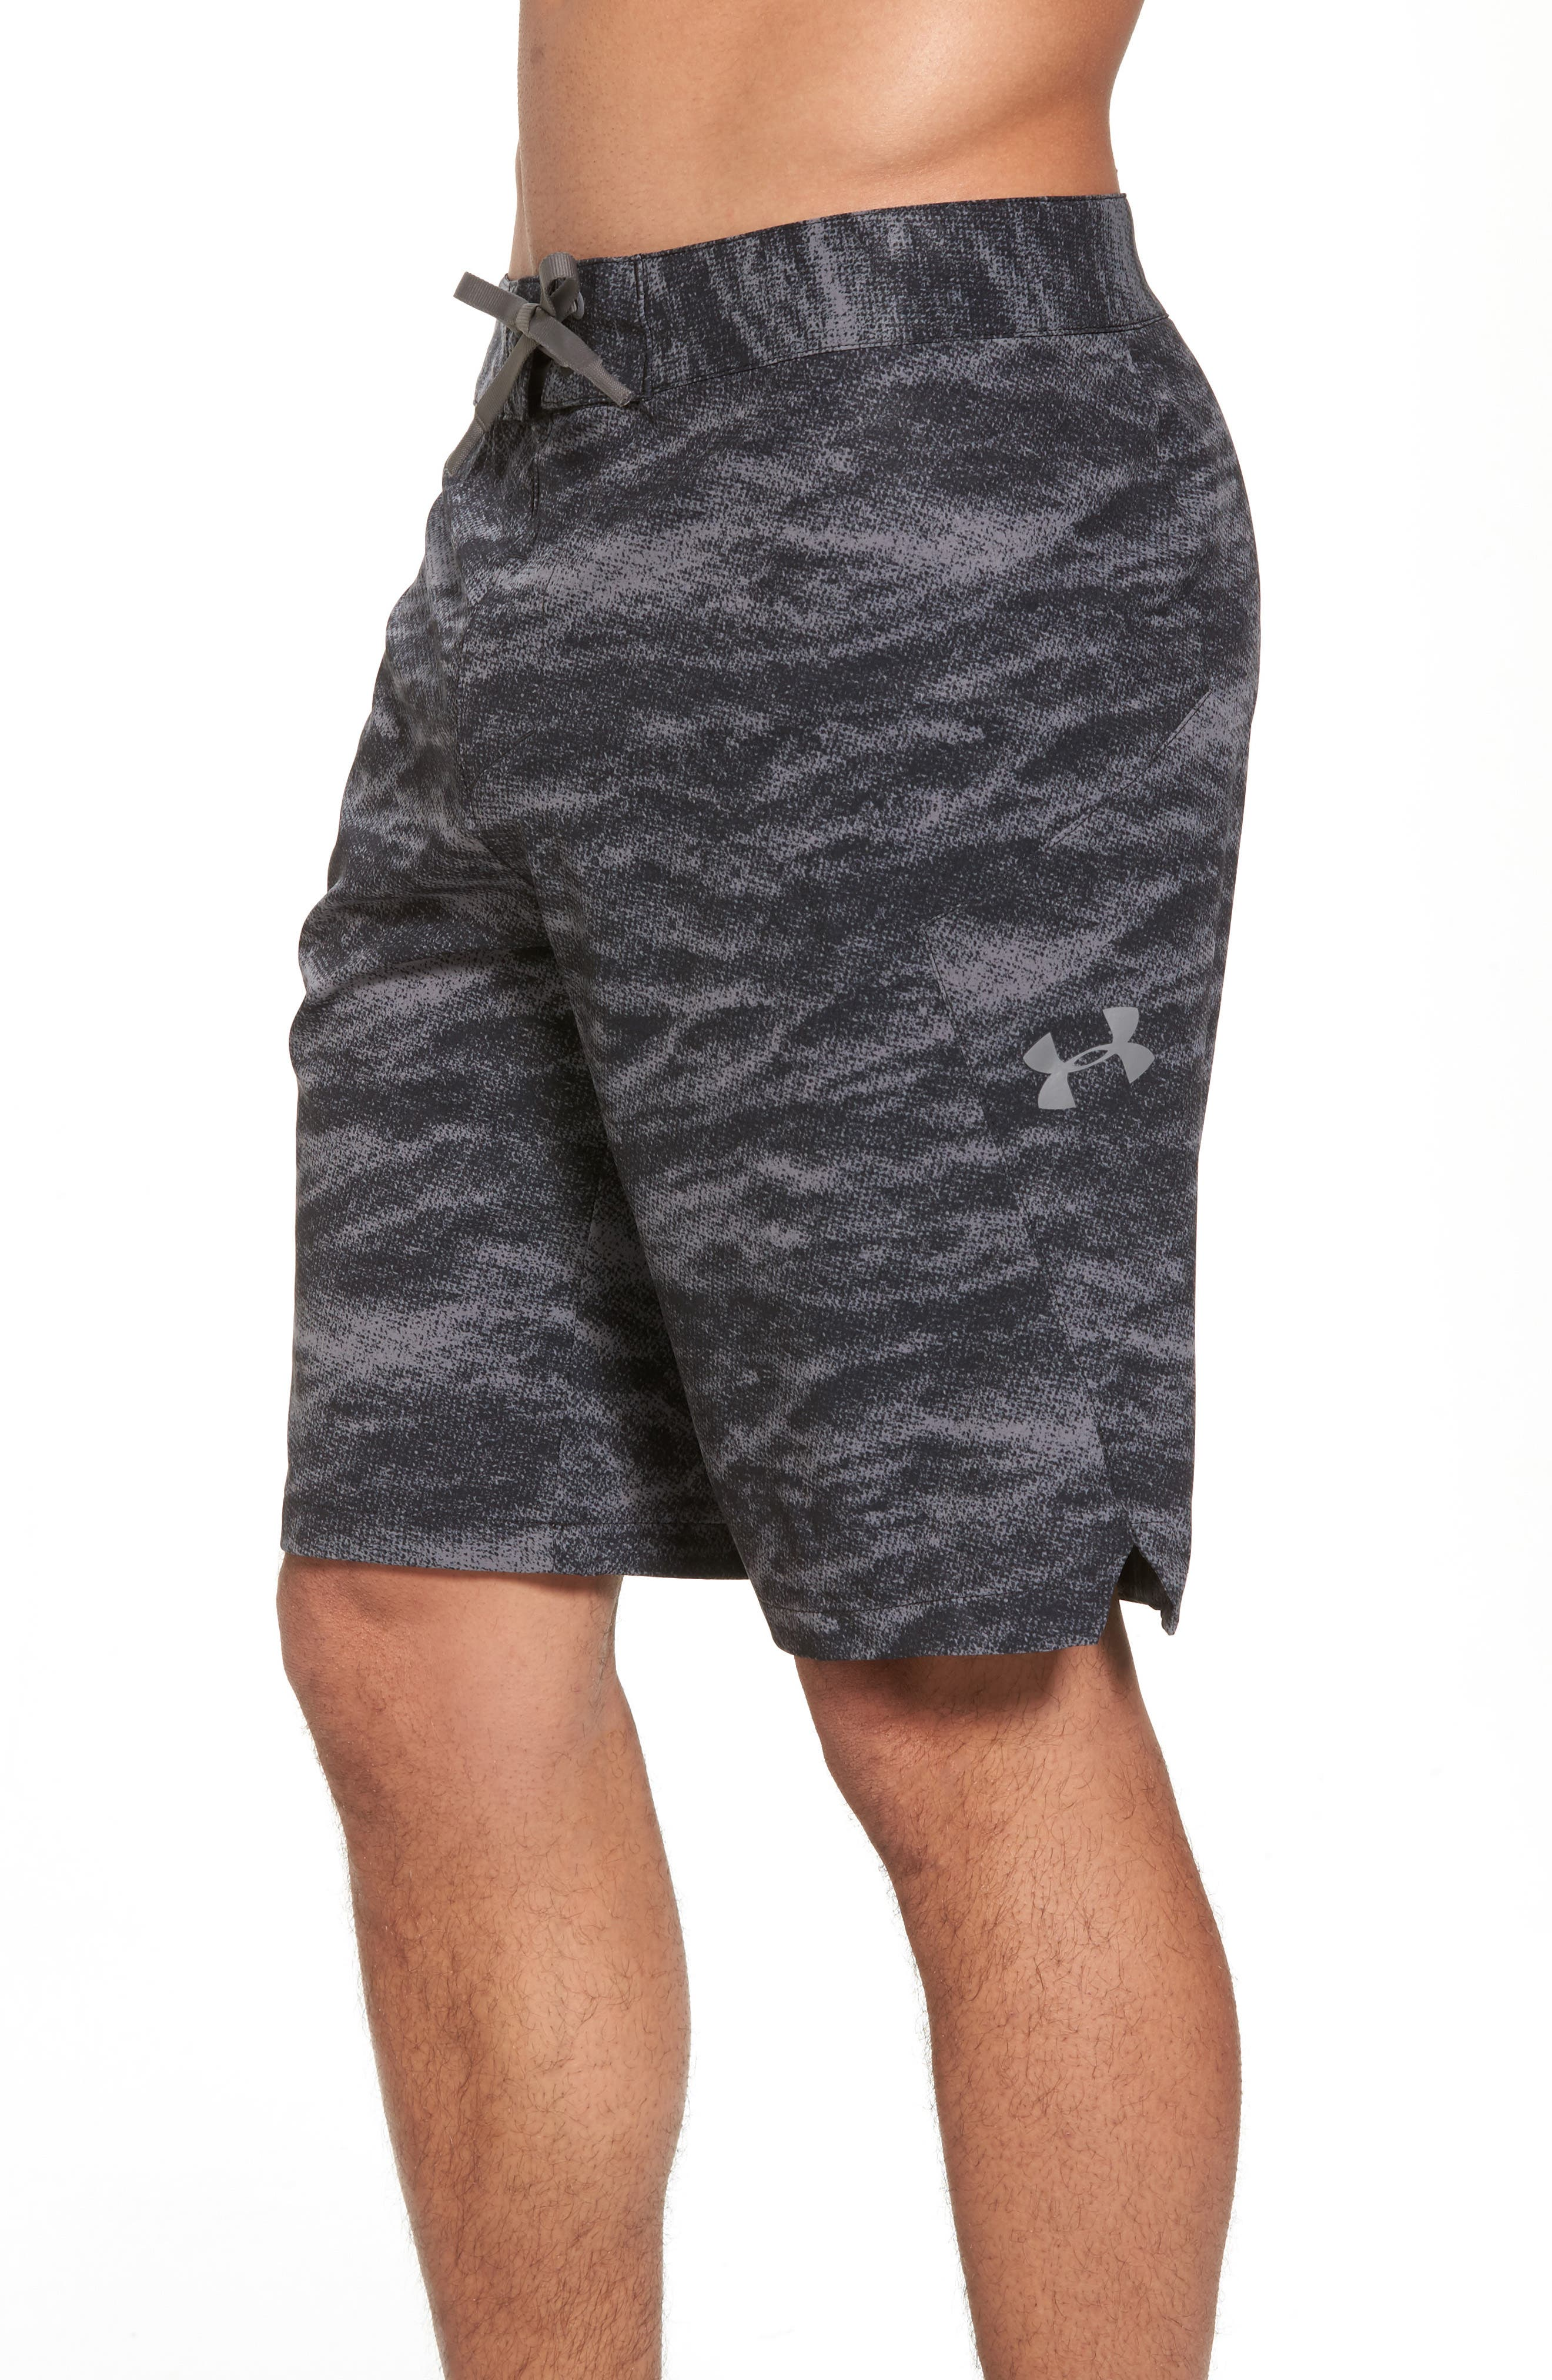 UNDER ARMOUR,                             Print Board Shorts,                             Alternate thumbnail 4, color,                             004